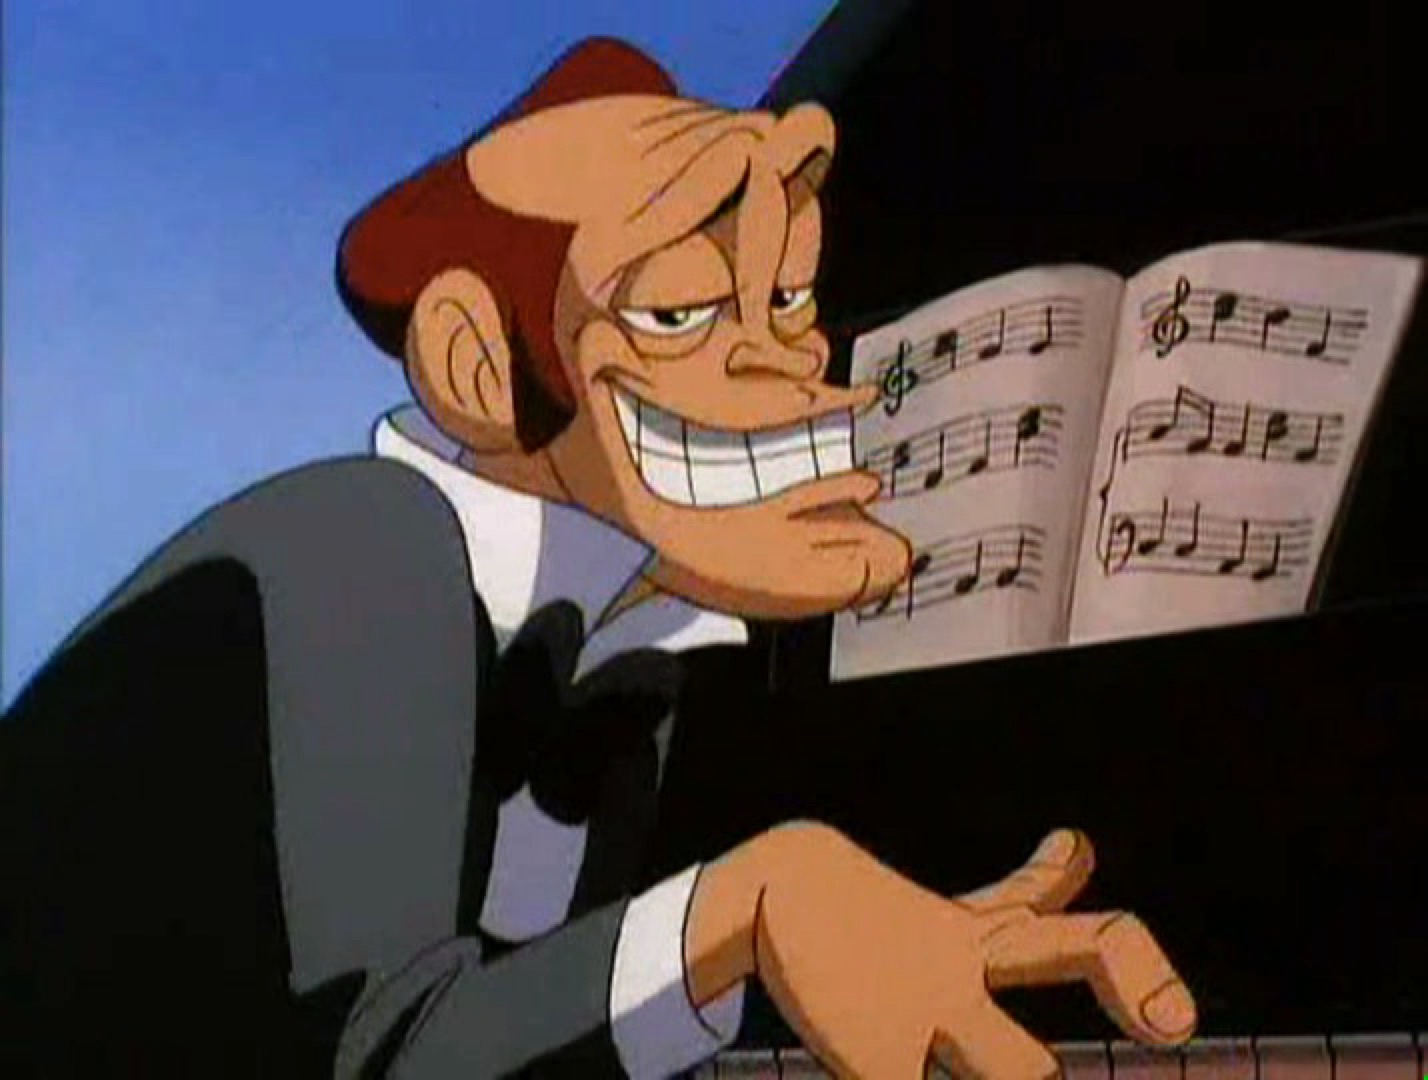 The Schubert from ANIMANIACS